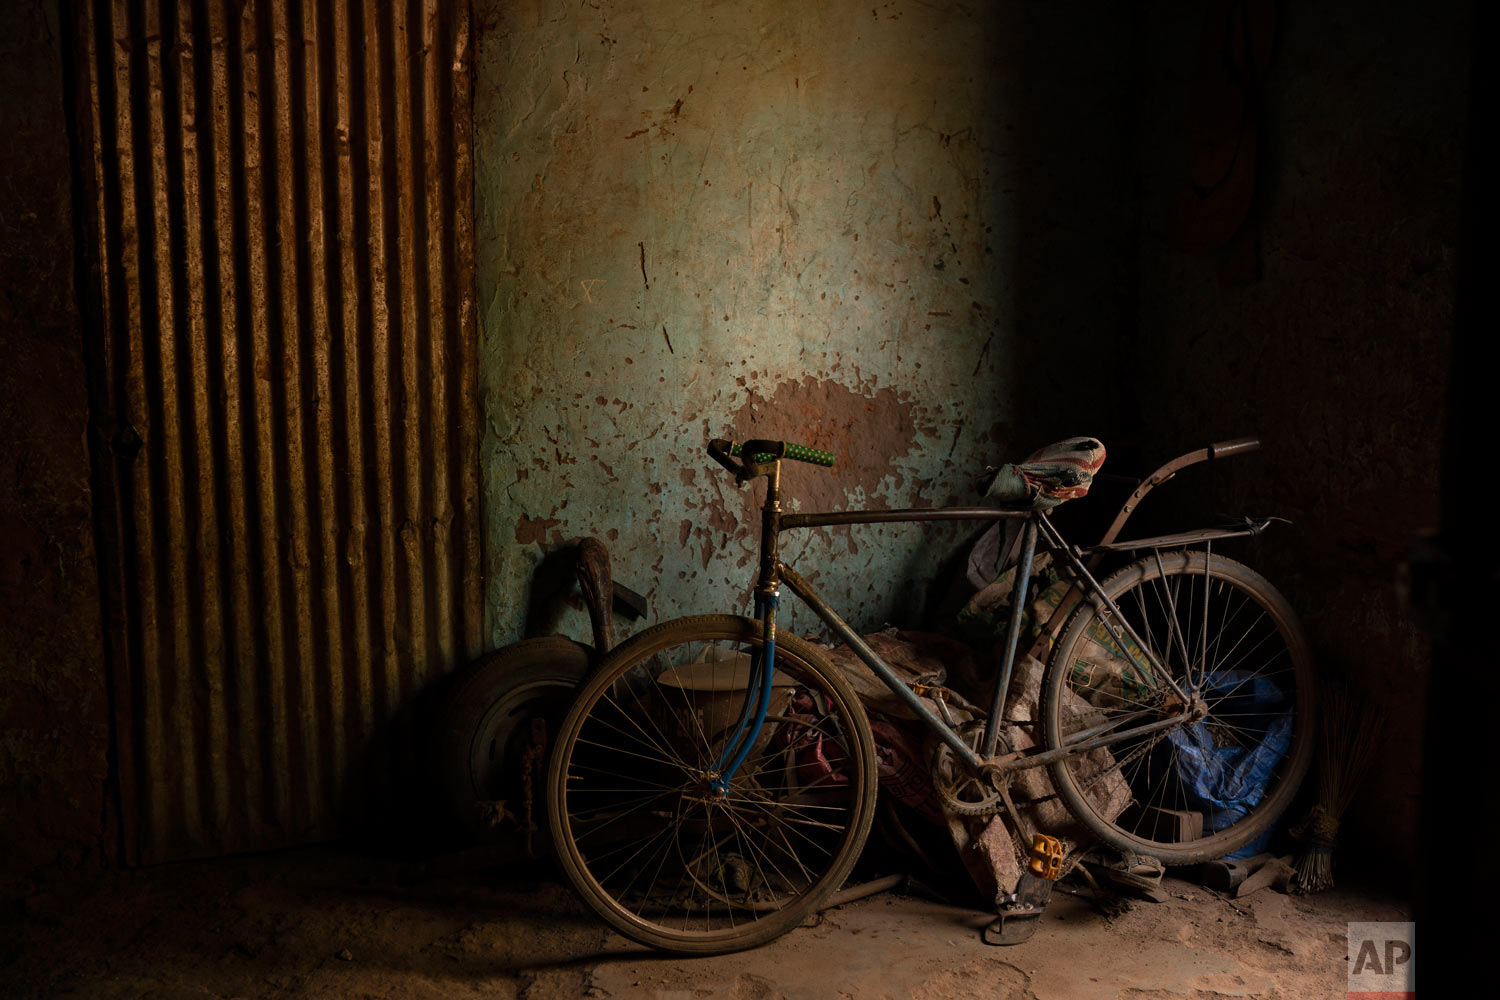 Cheikh Fofana's bicycle is parked inside his house on Nov. 27, 2018, in Goudiry, Senegal. (AP Photo/Felipe Dana)